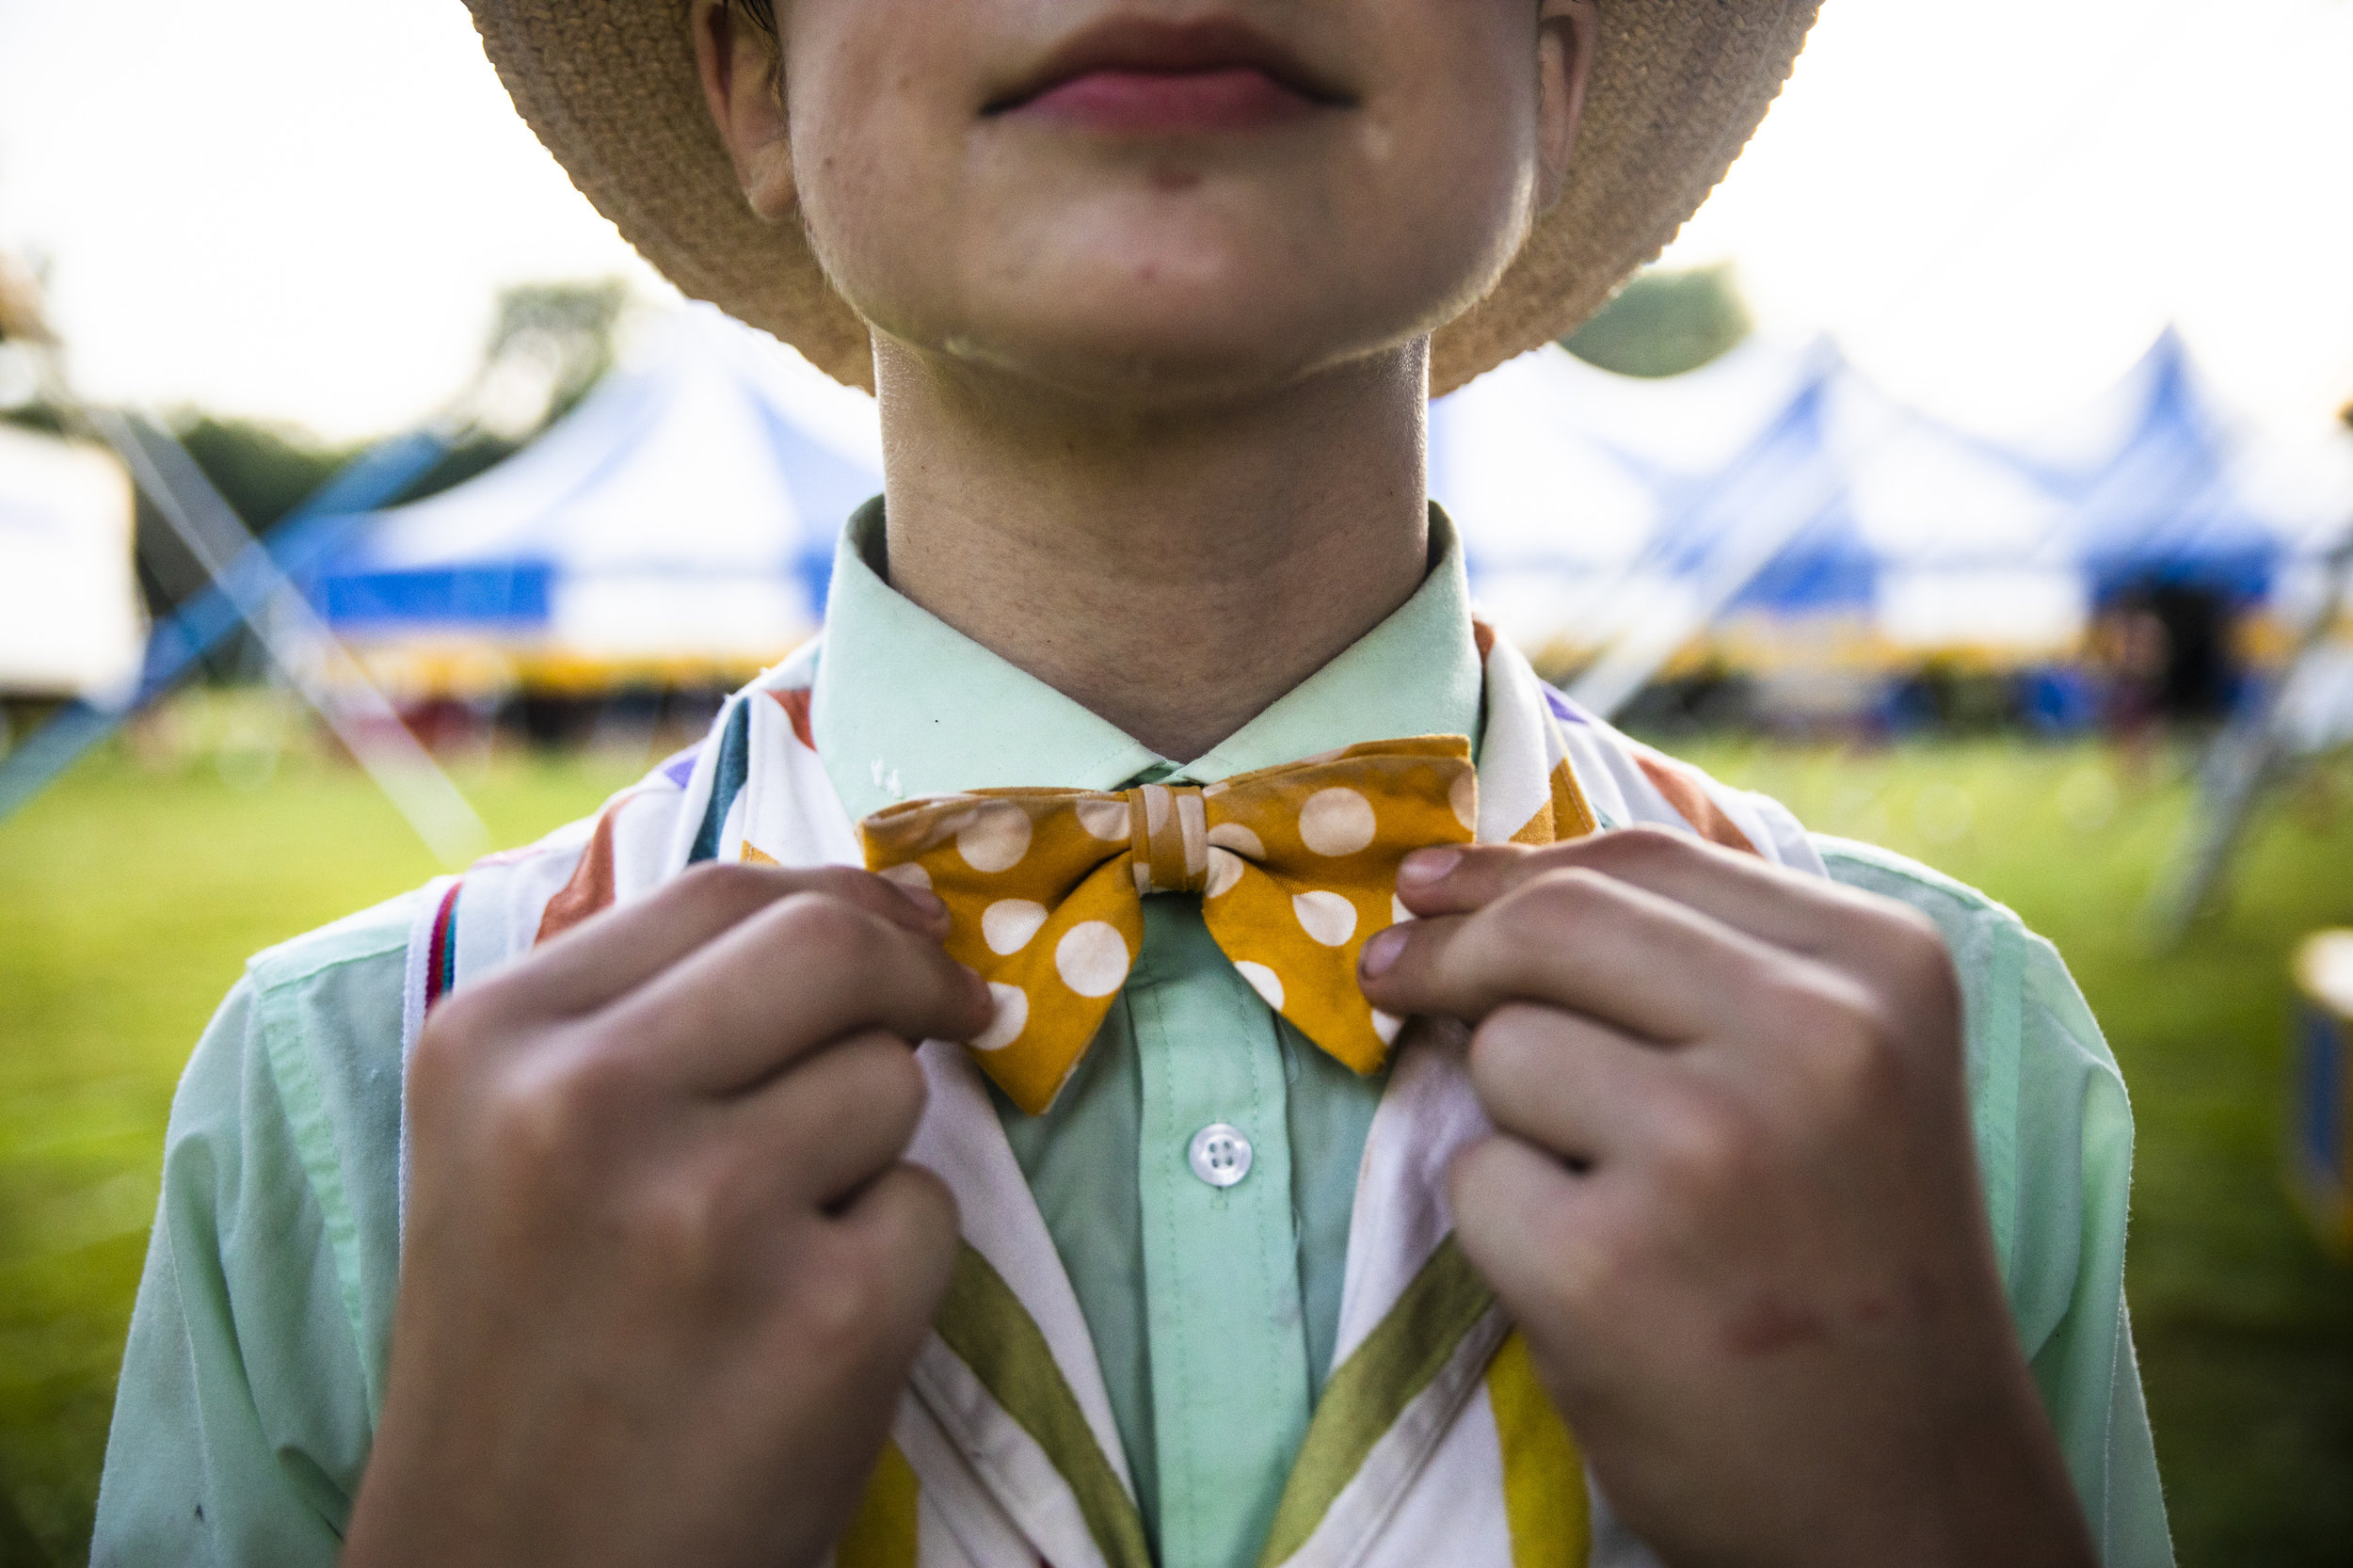 Frederick Buford, 13, adjusts his bowtie before performing in Circus Smirkus' Big Top Tour in the heat of a Hanover, NH afternoon. This is Buford first season with Circus Smirkus. The touring troupe is the only traveling youth circus in the United States and has been existence for over 30 years.